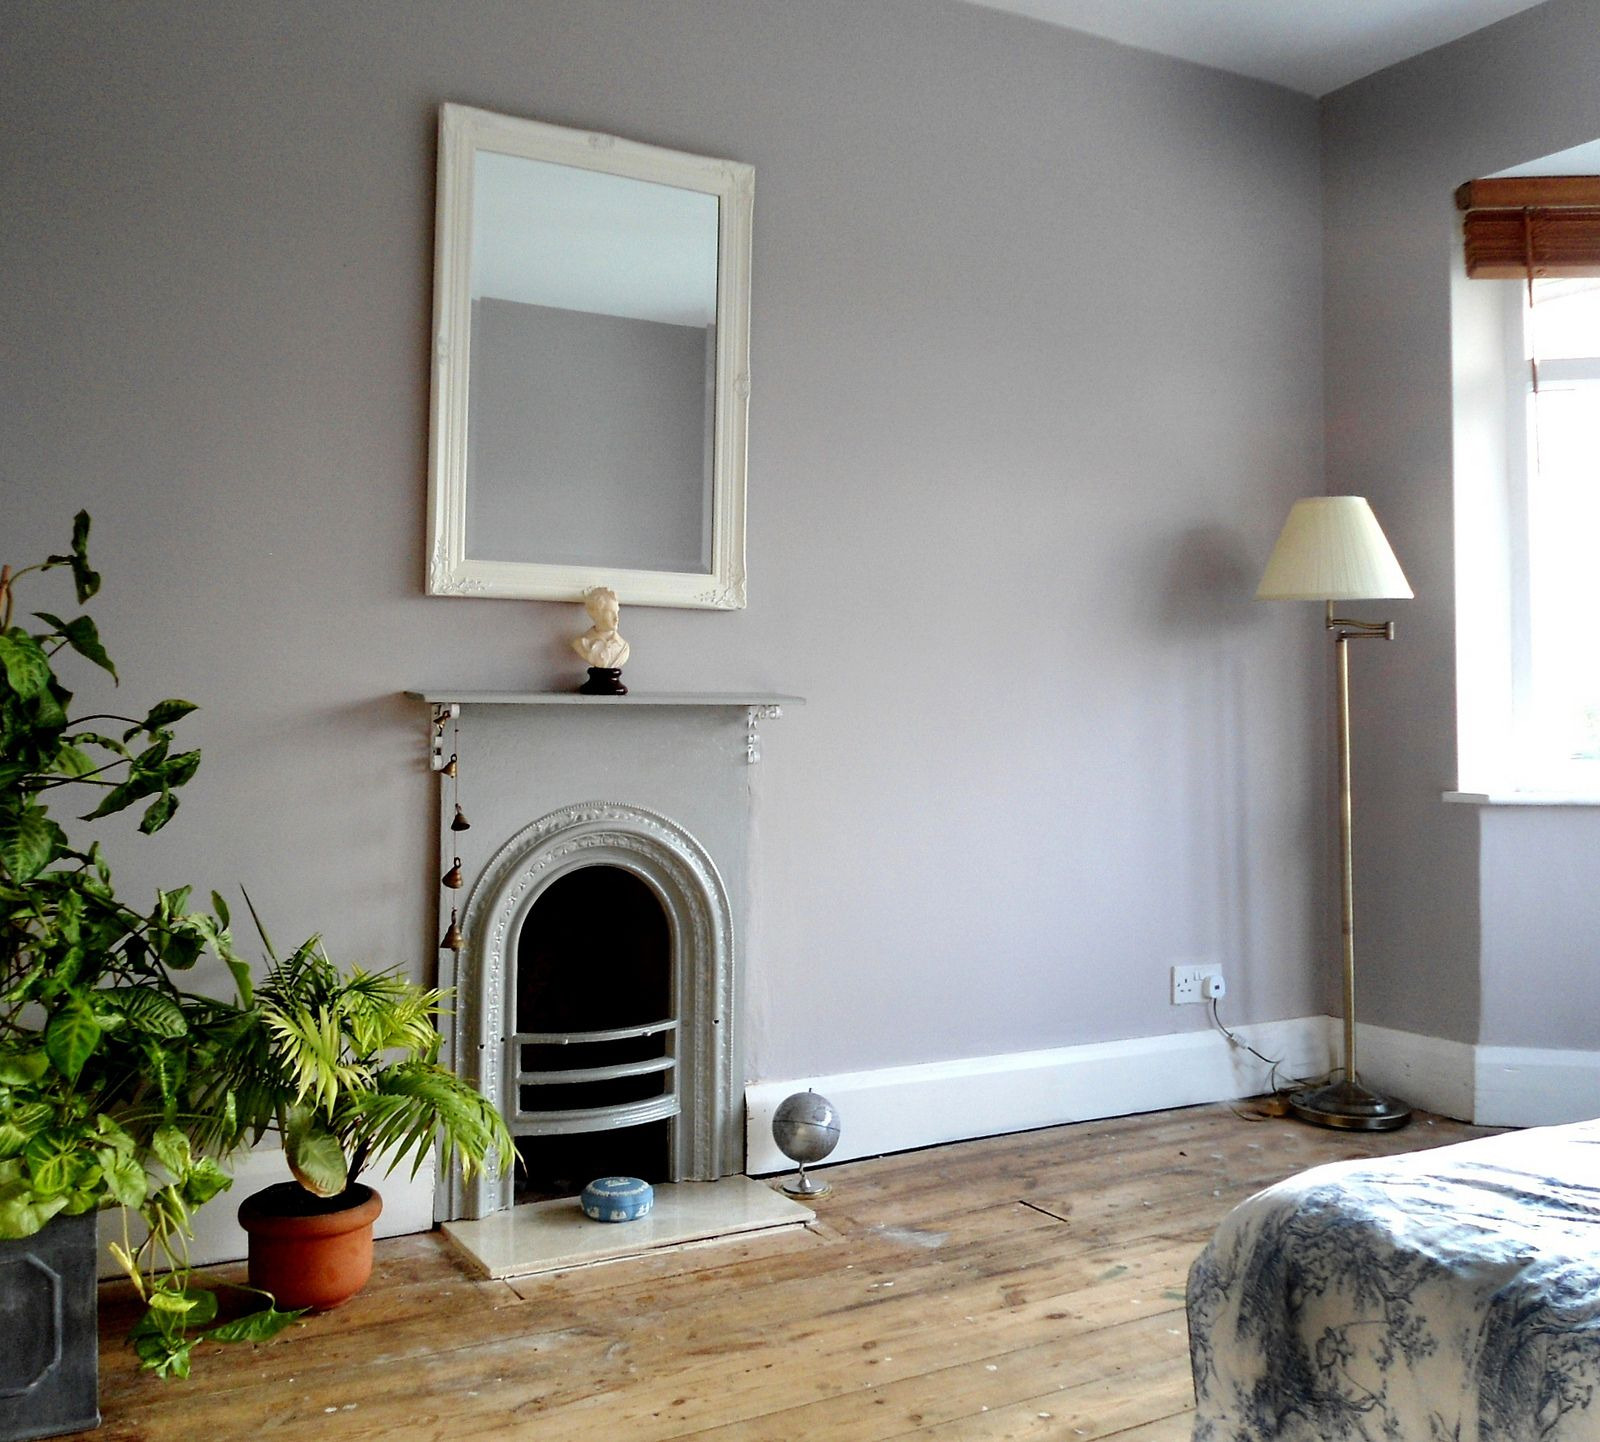 Bedroom Athletics Katy Bedroom Paint Ideas With White Furniture Bedroom Apartment Decorating Ideas Bedroom Ideas Quotes: 'Chalk Blush' Dulux Paint In 2019